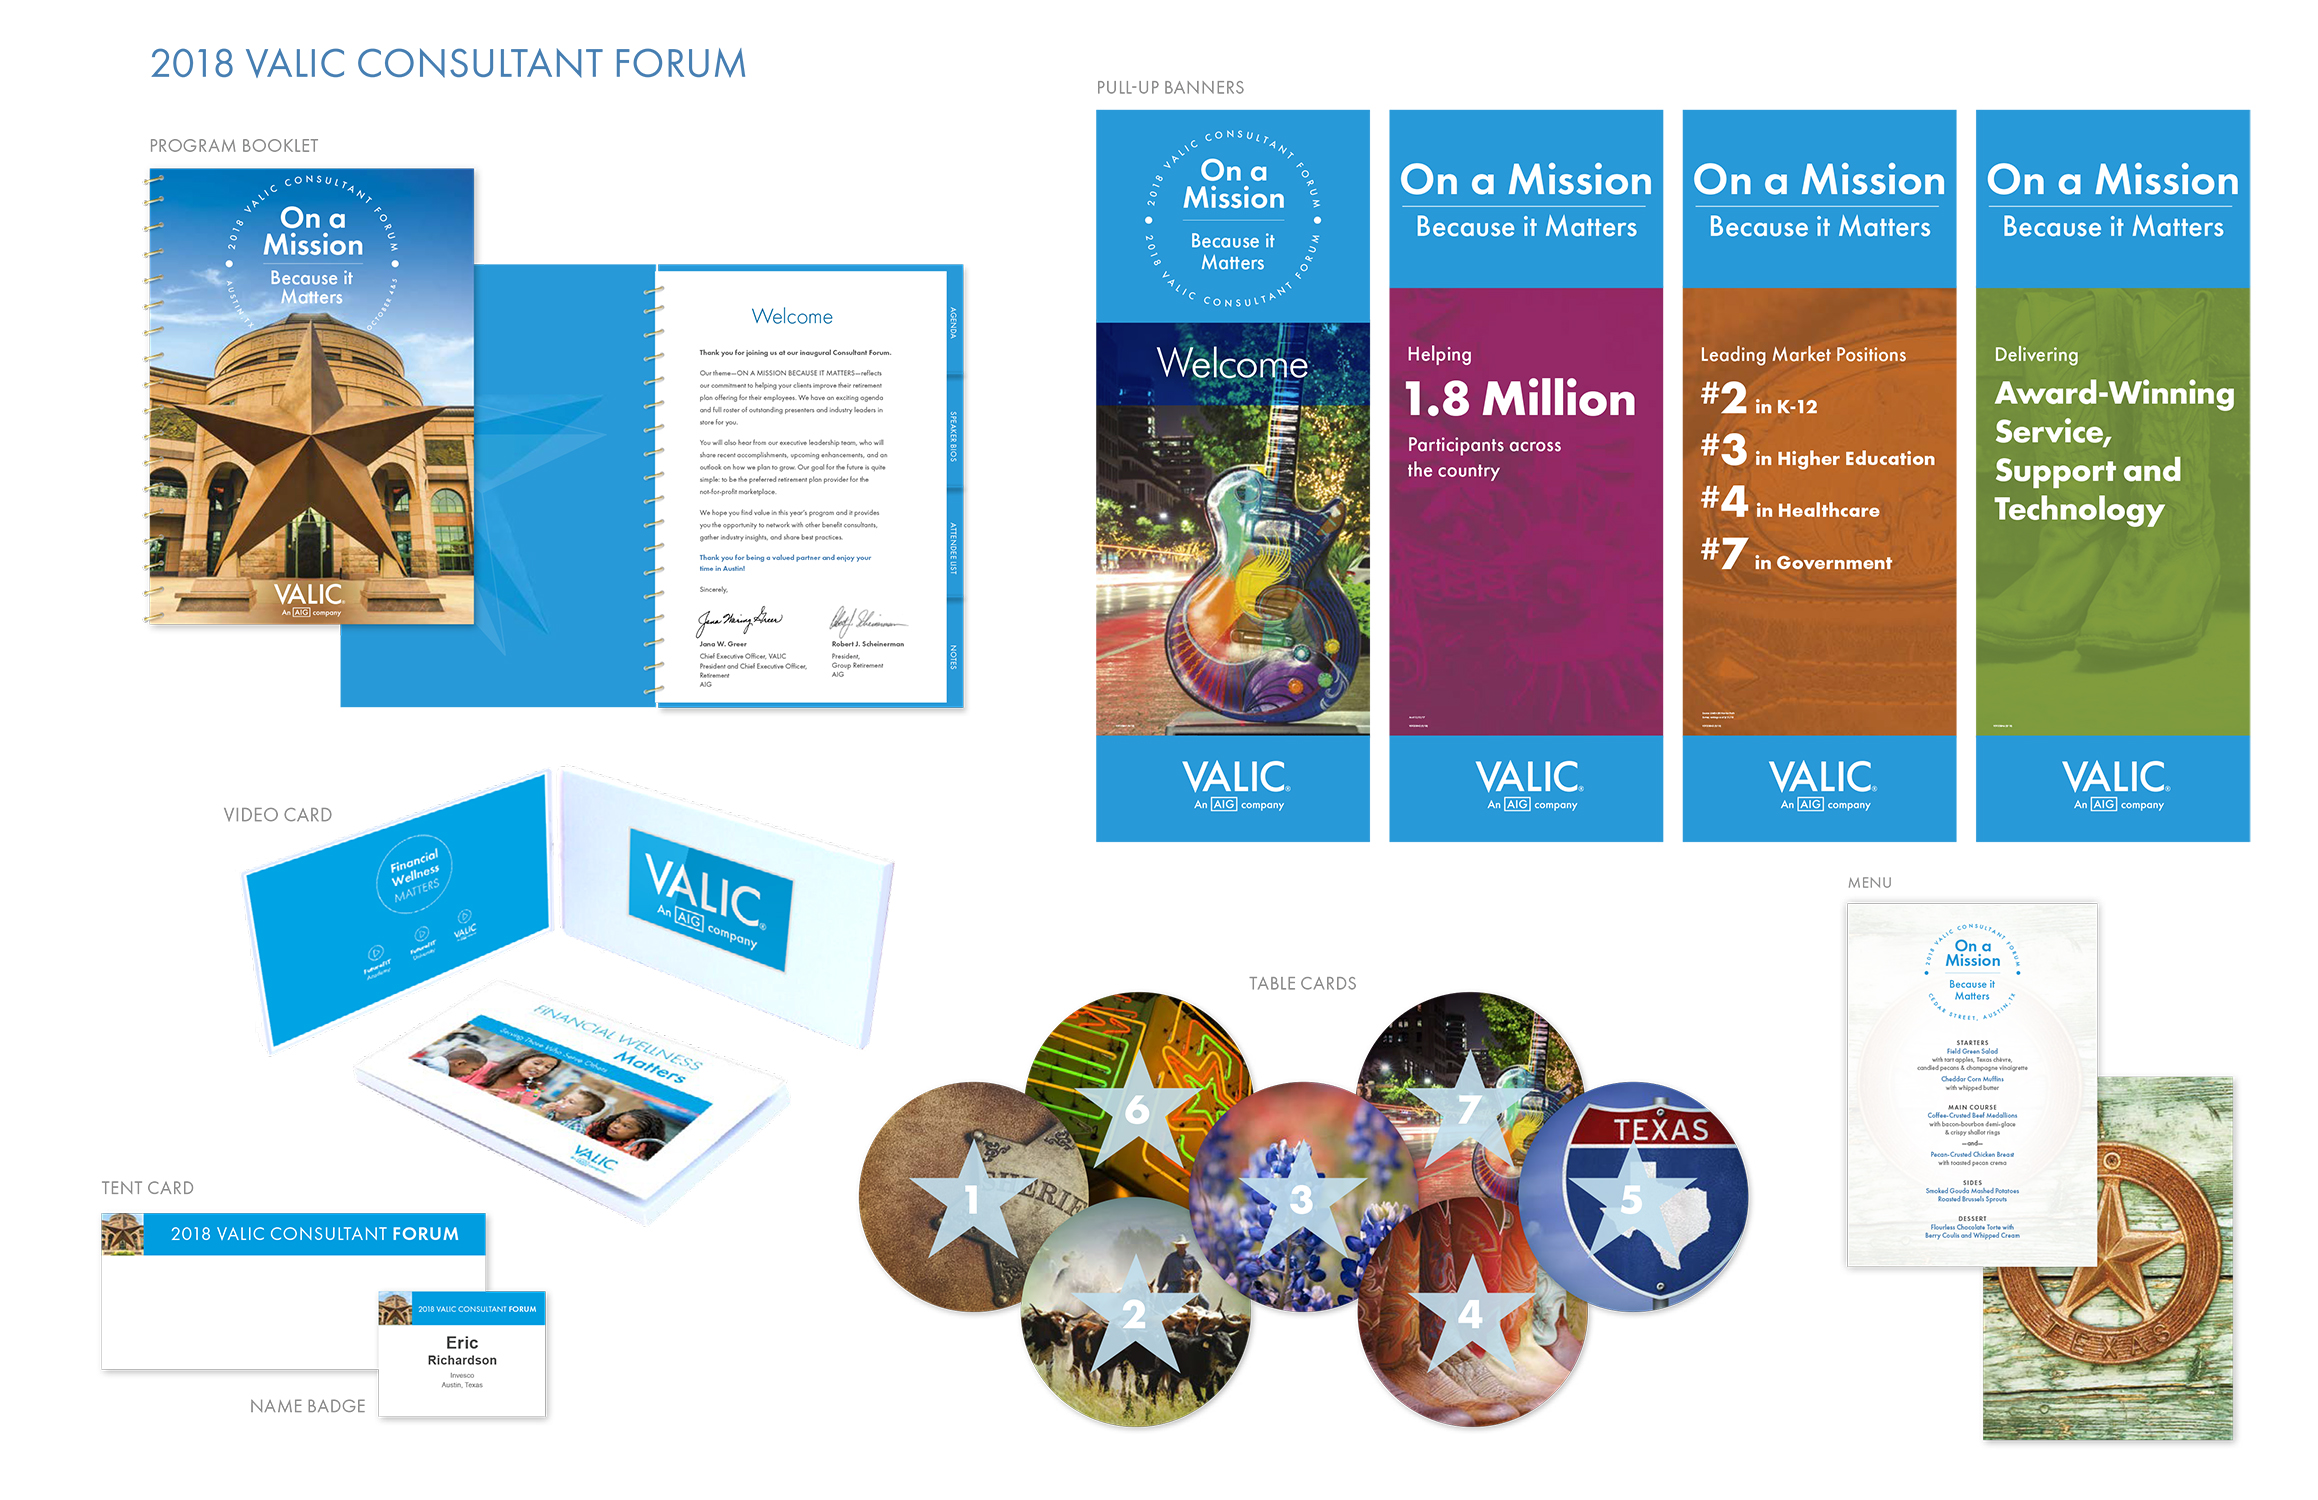 valic_forum_board_2018